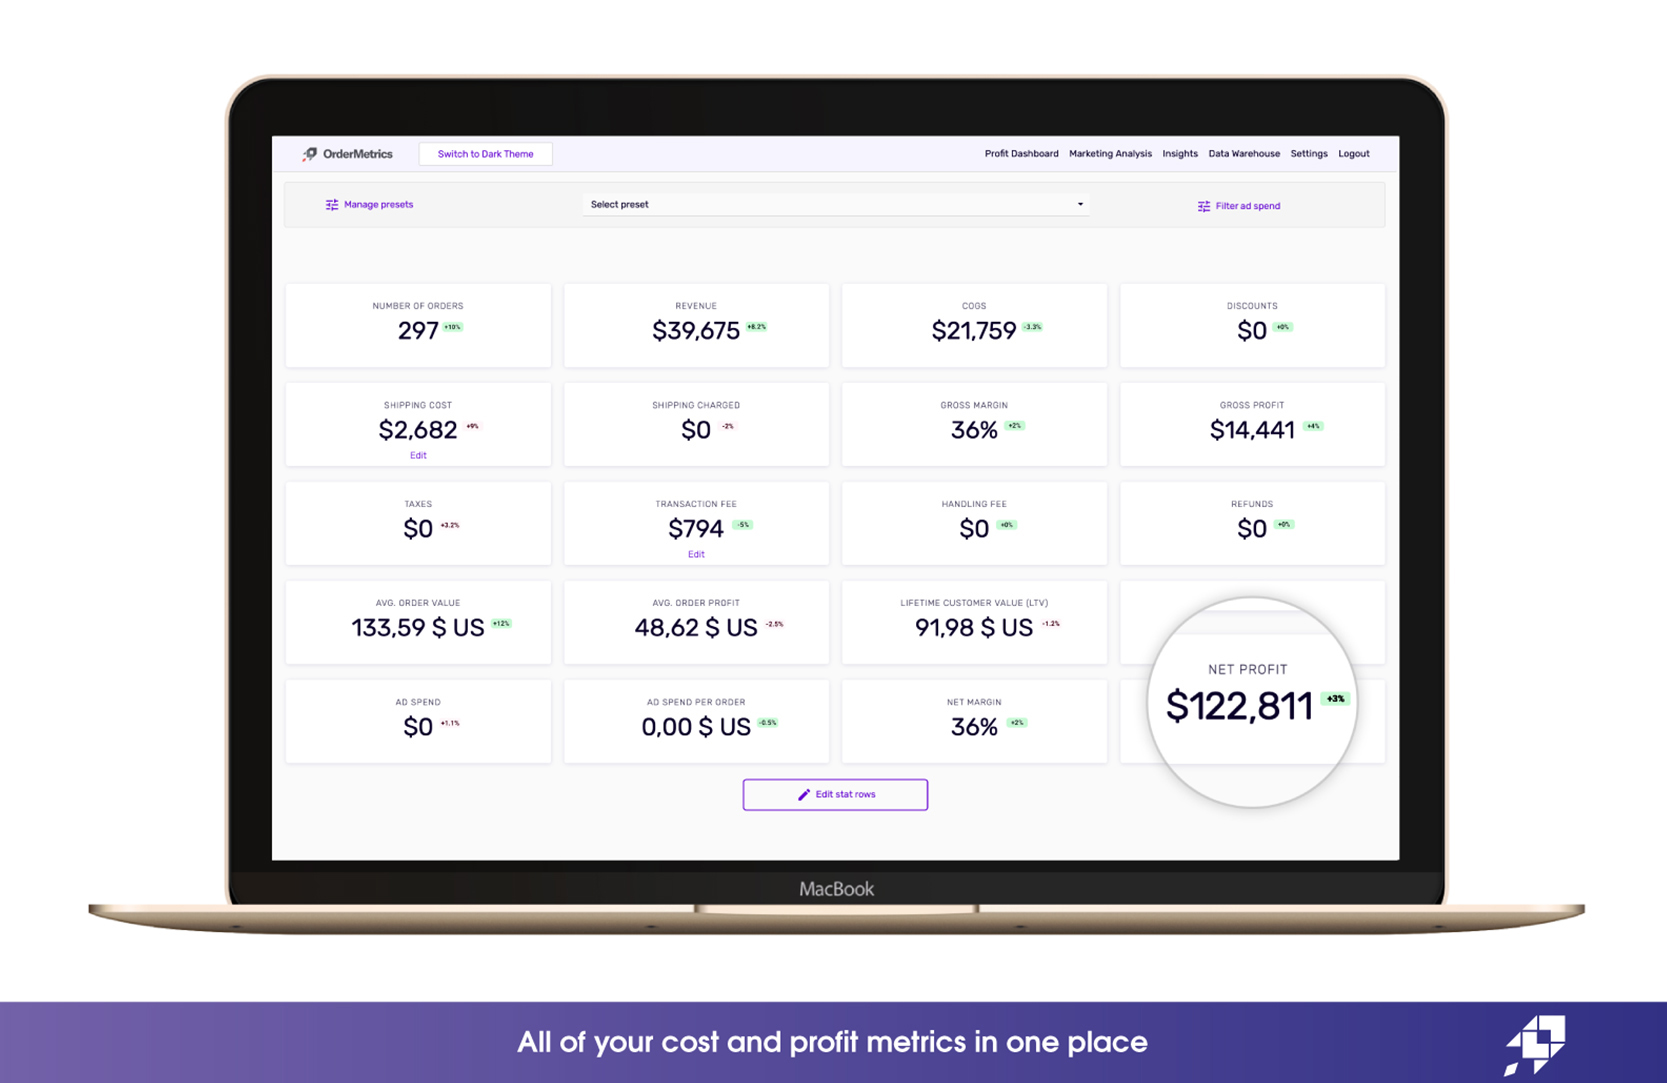 All of your cost and profit metrics in one place